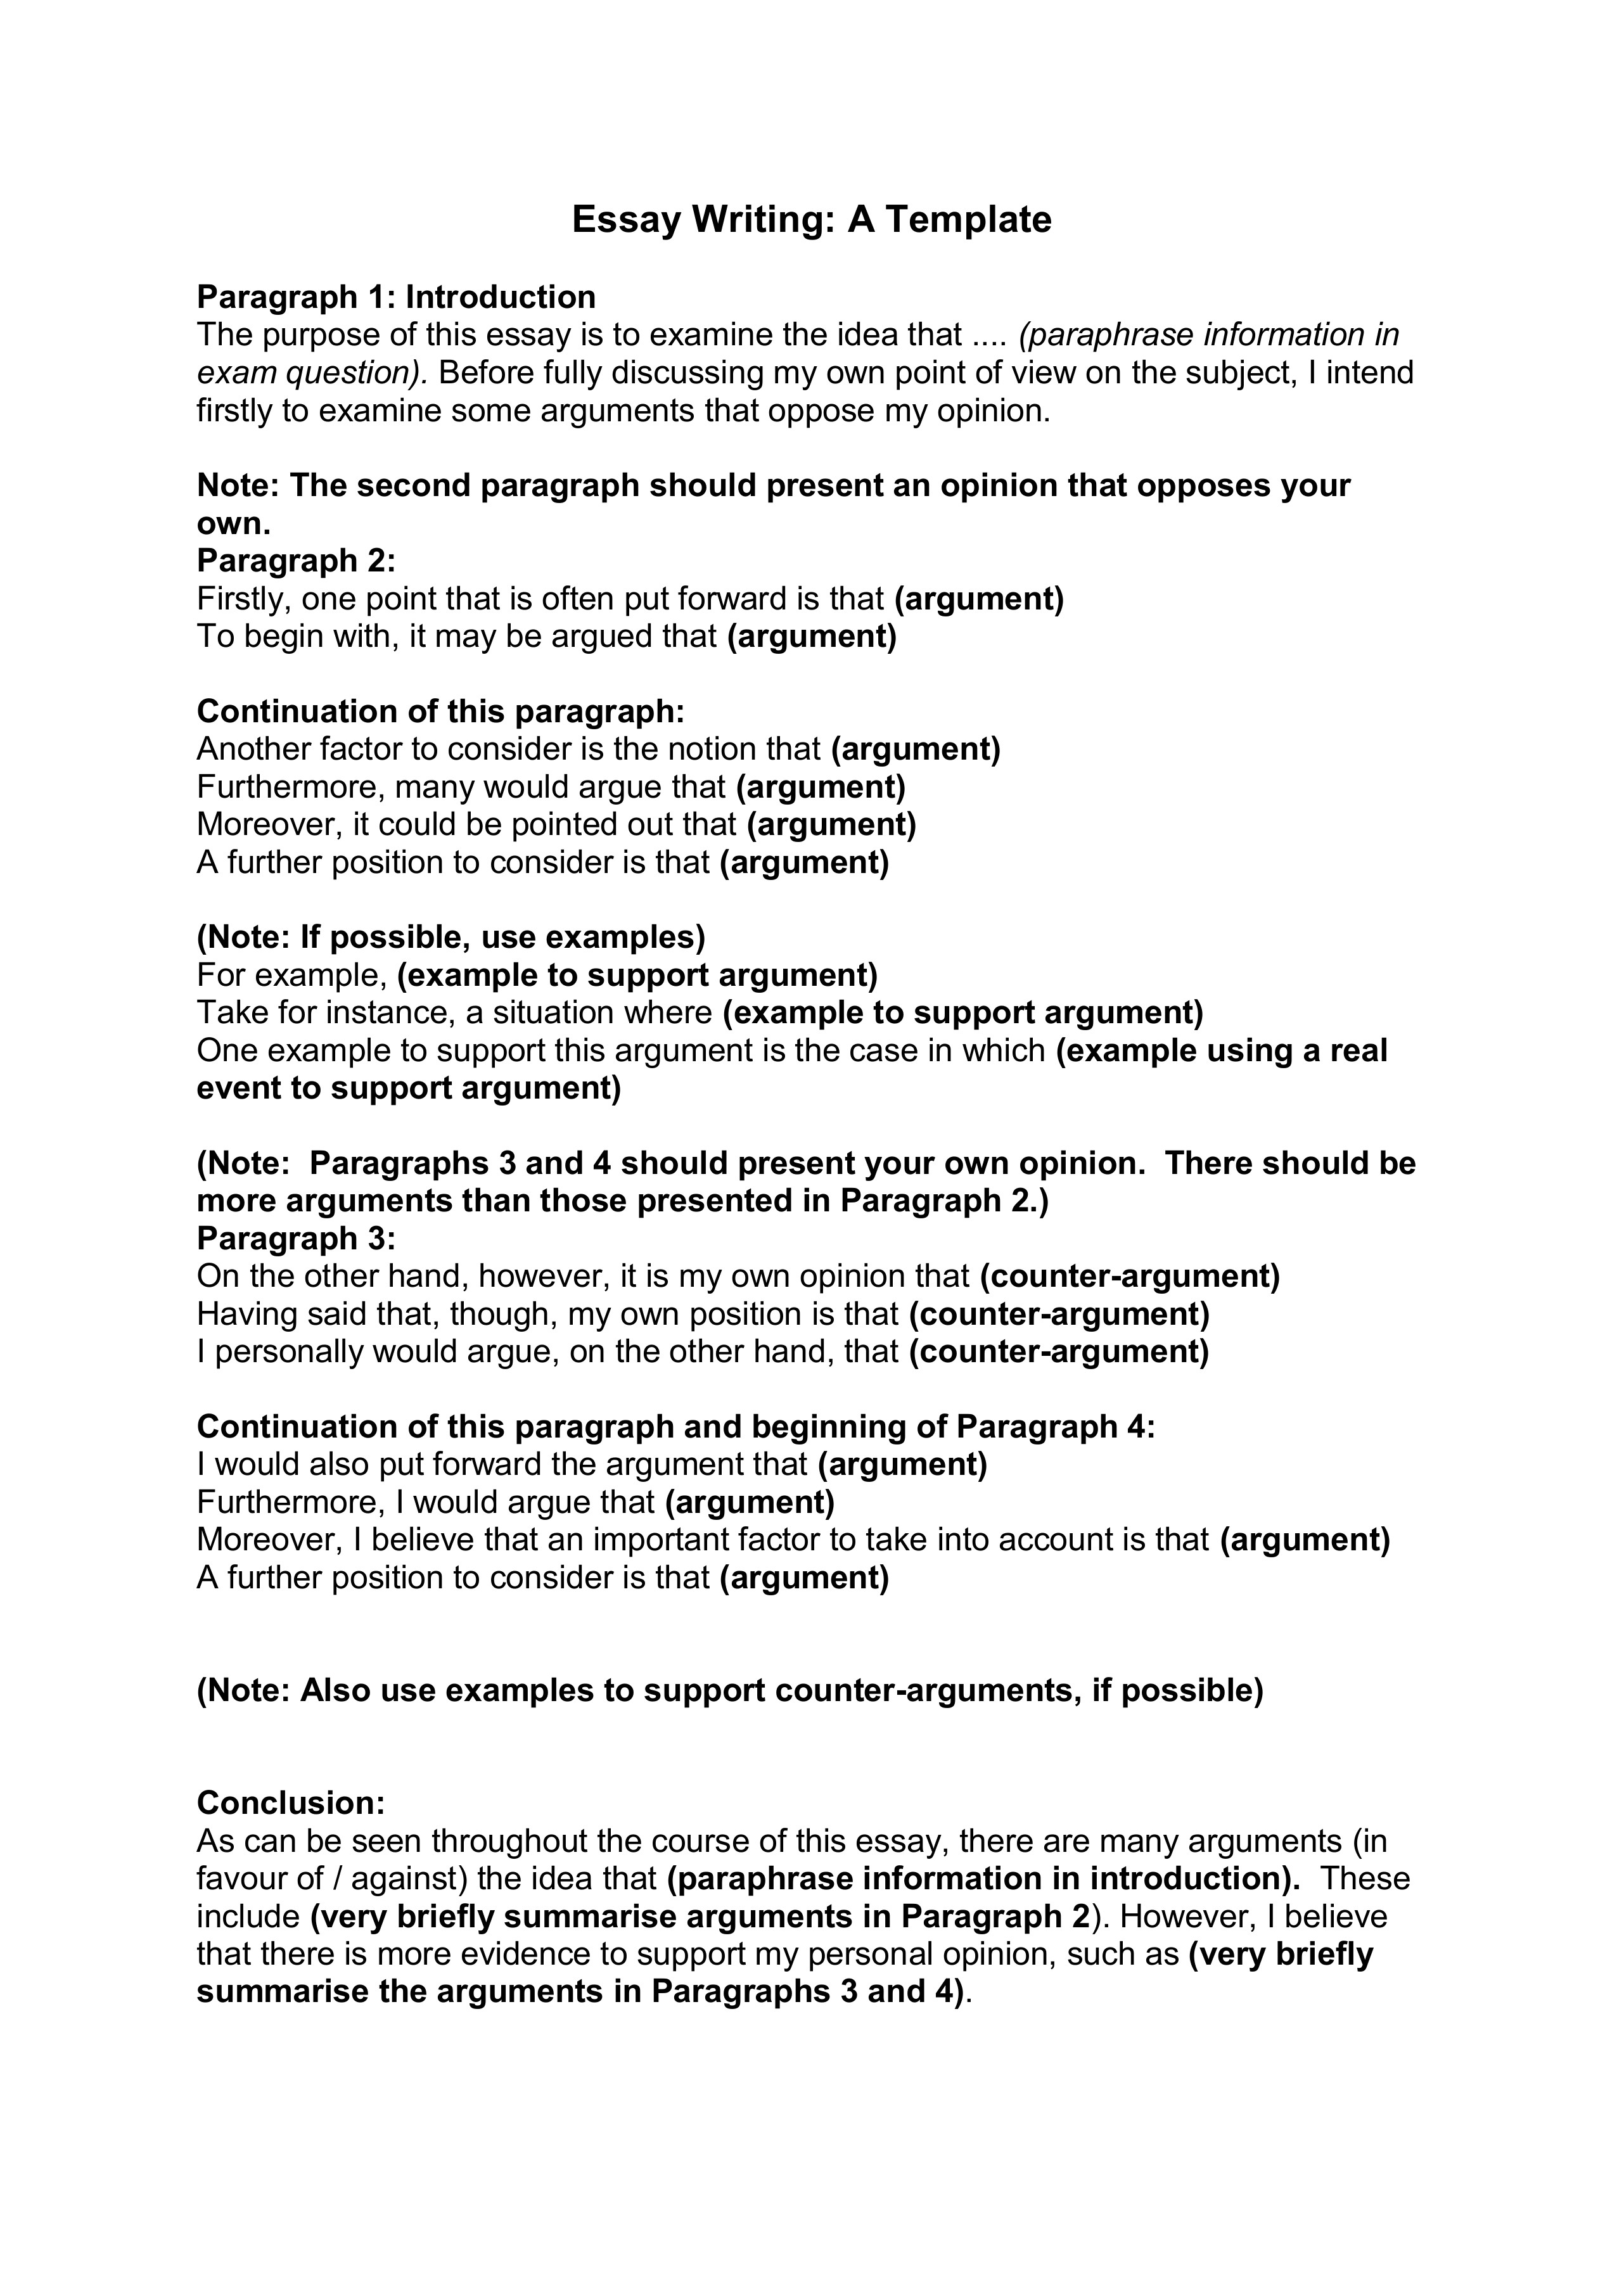 015 Essay Writing Template For Part 2cbu003d Research Paper Order Of Wonderful A Making Mla Reviews Full